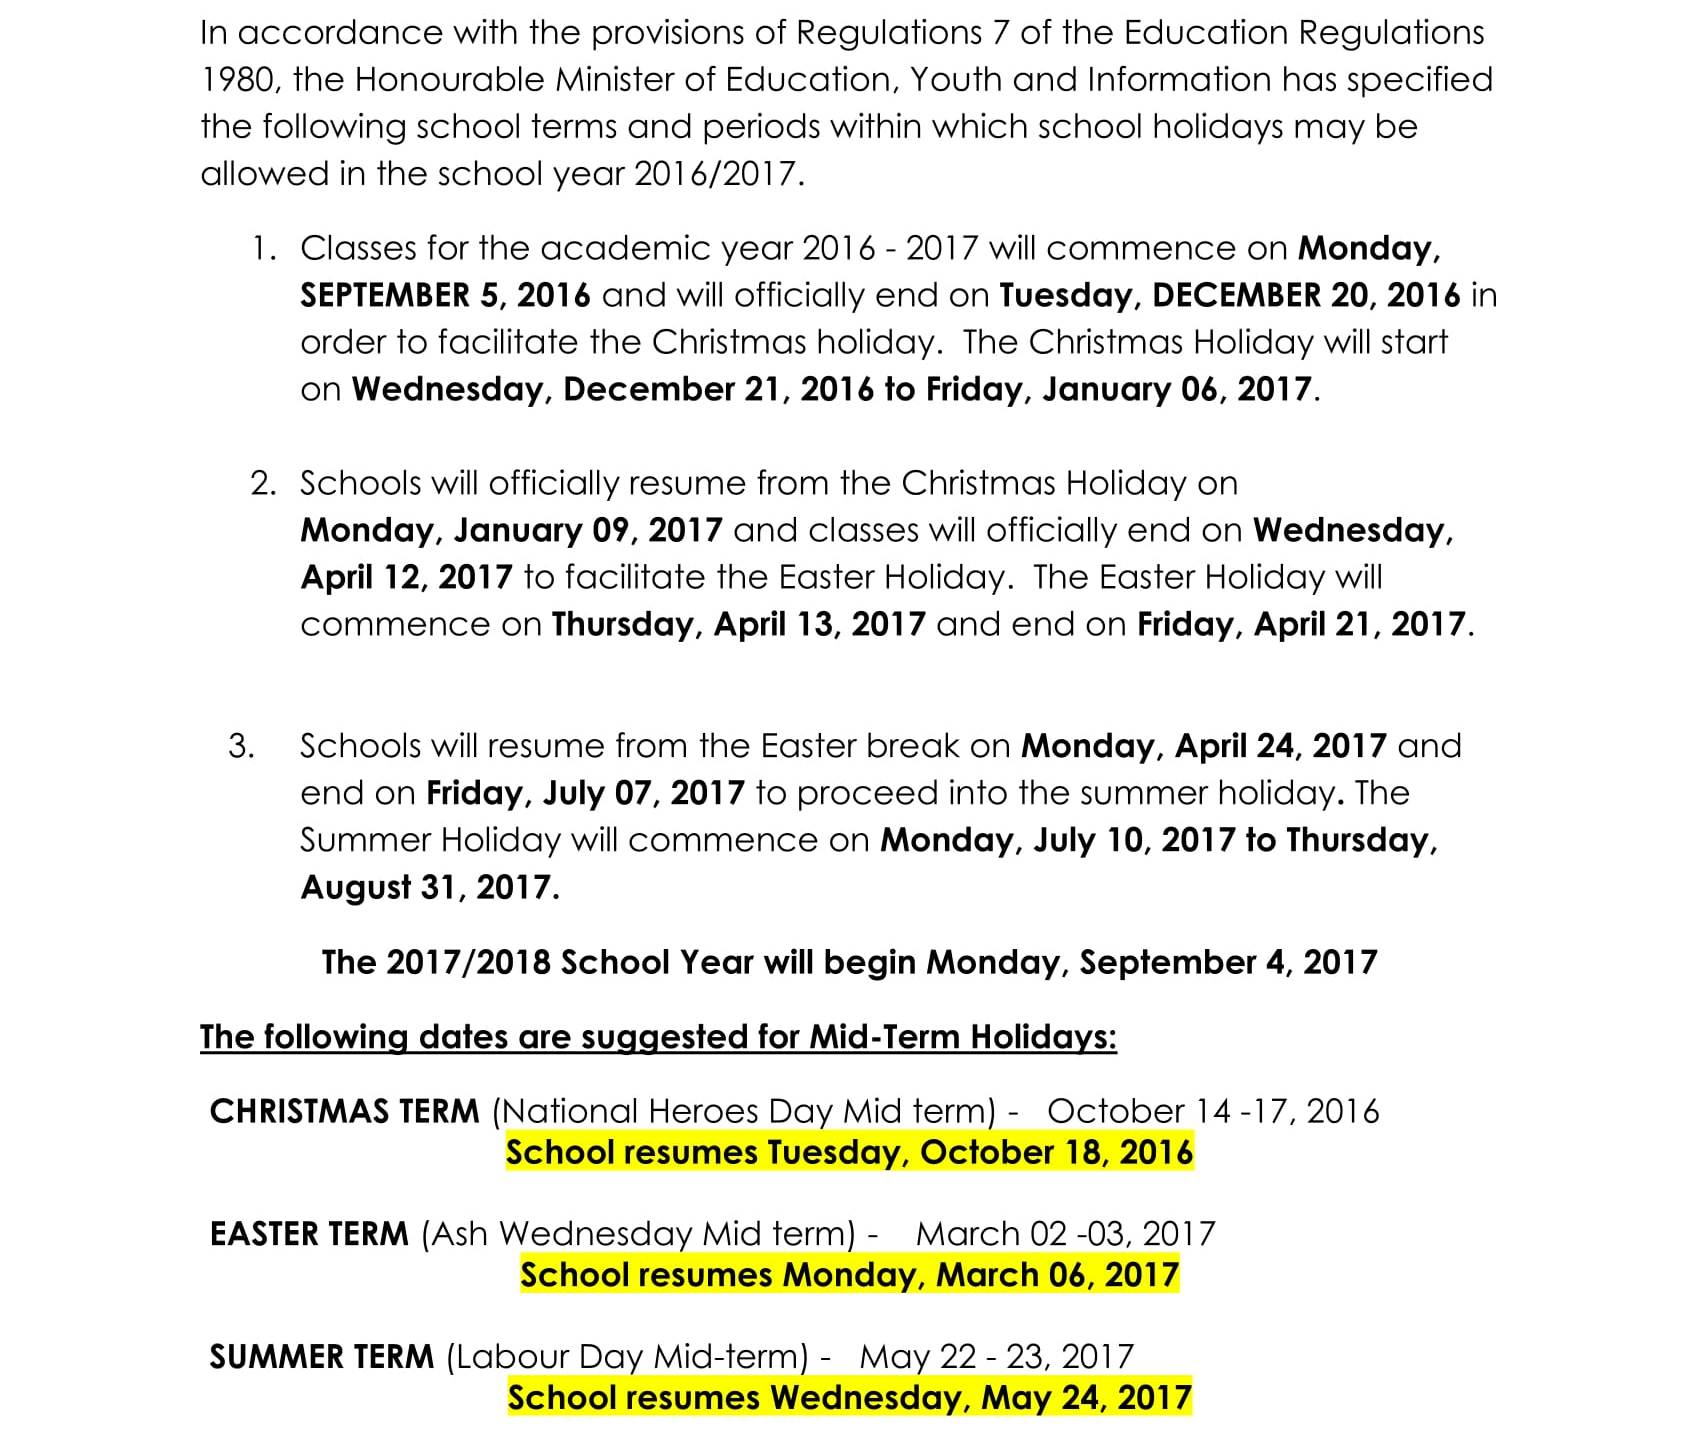 Jamaica Calendar Of School Terms Holidays For The Academic Year 2016 2017